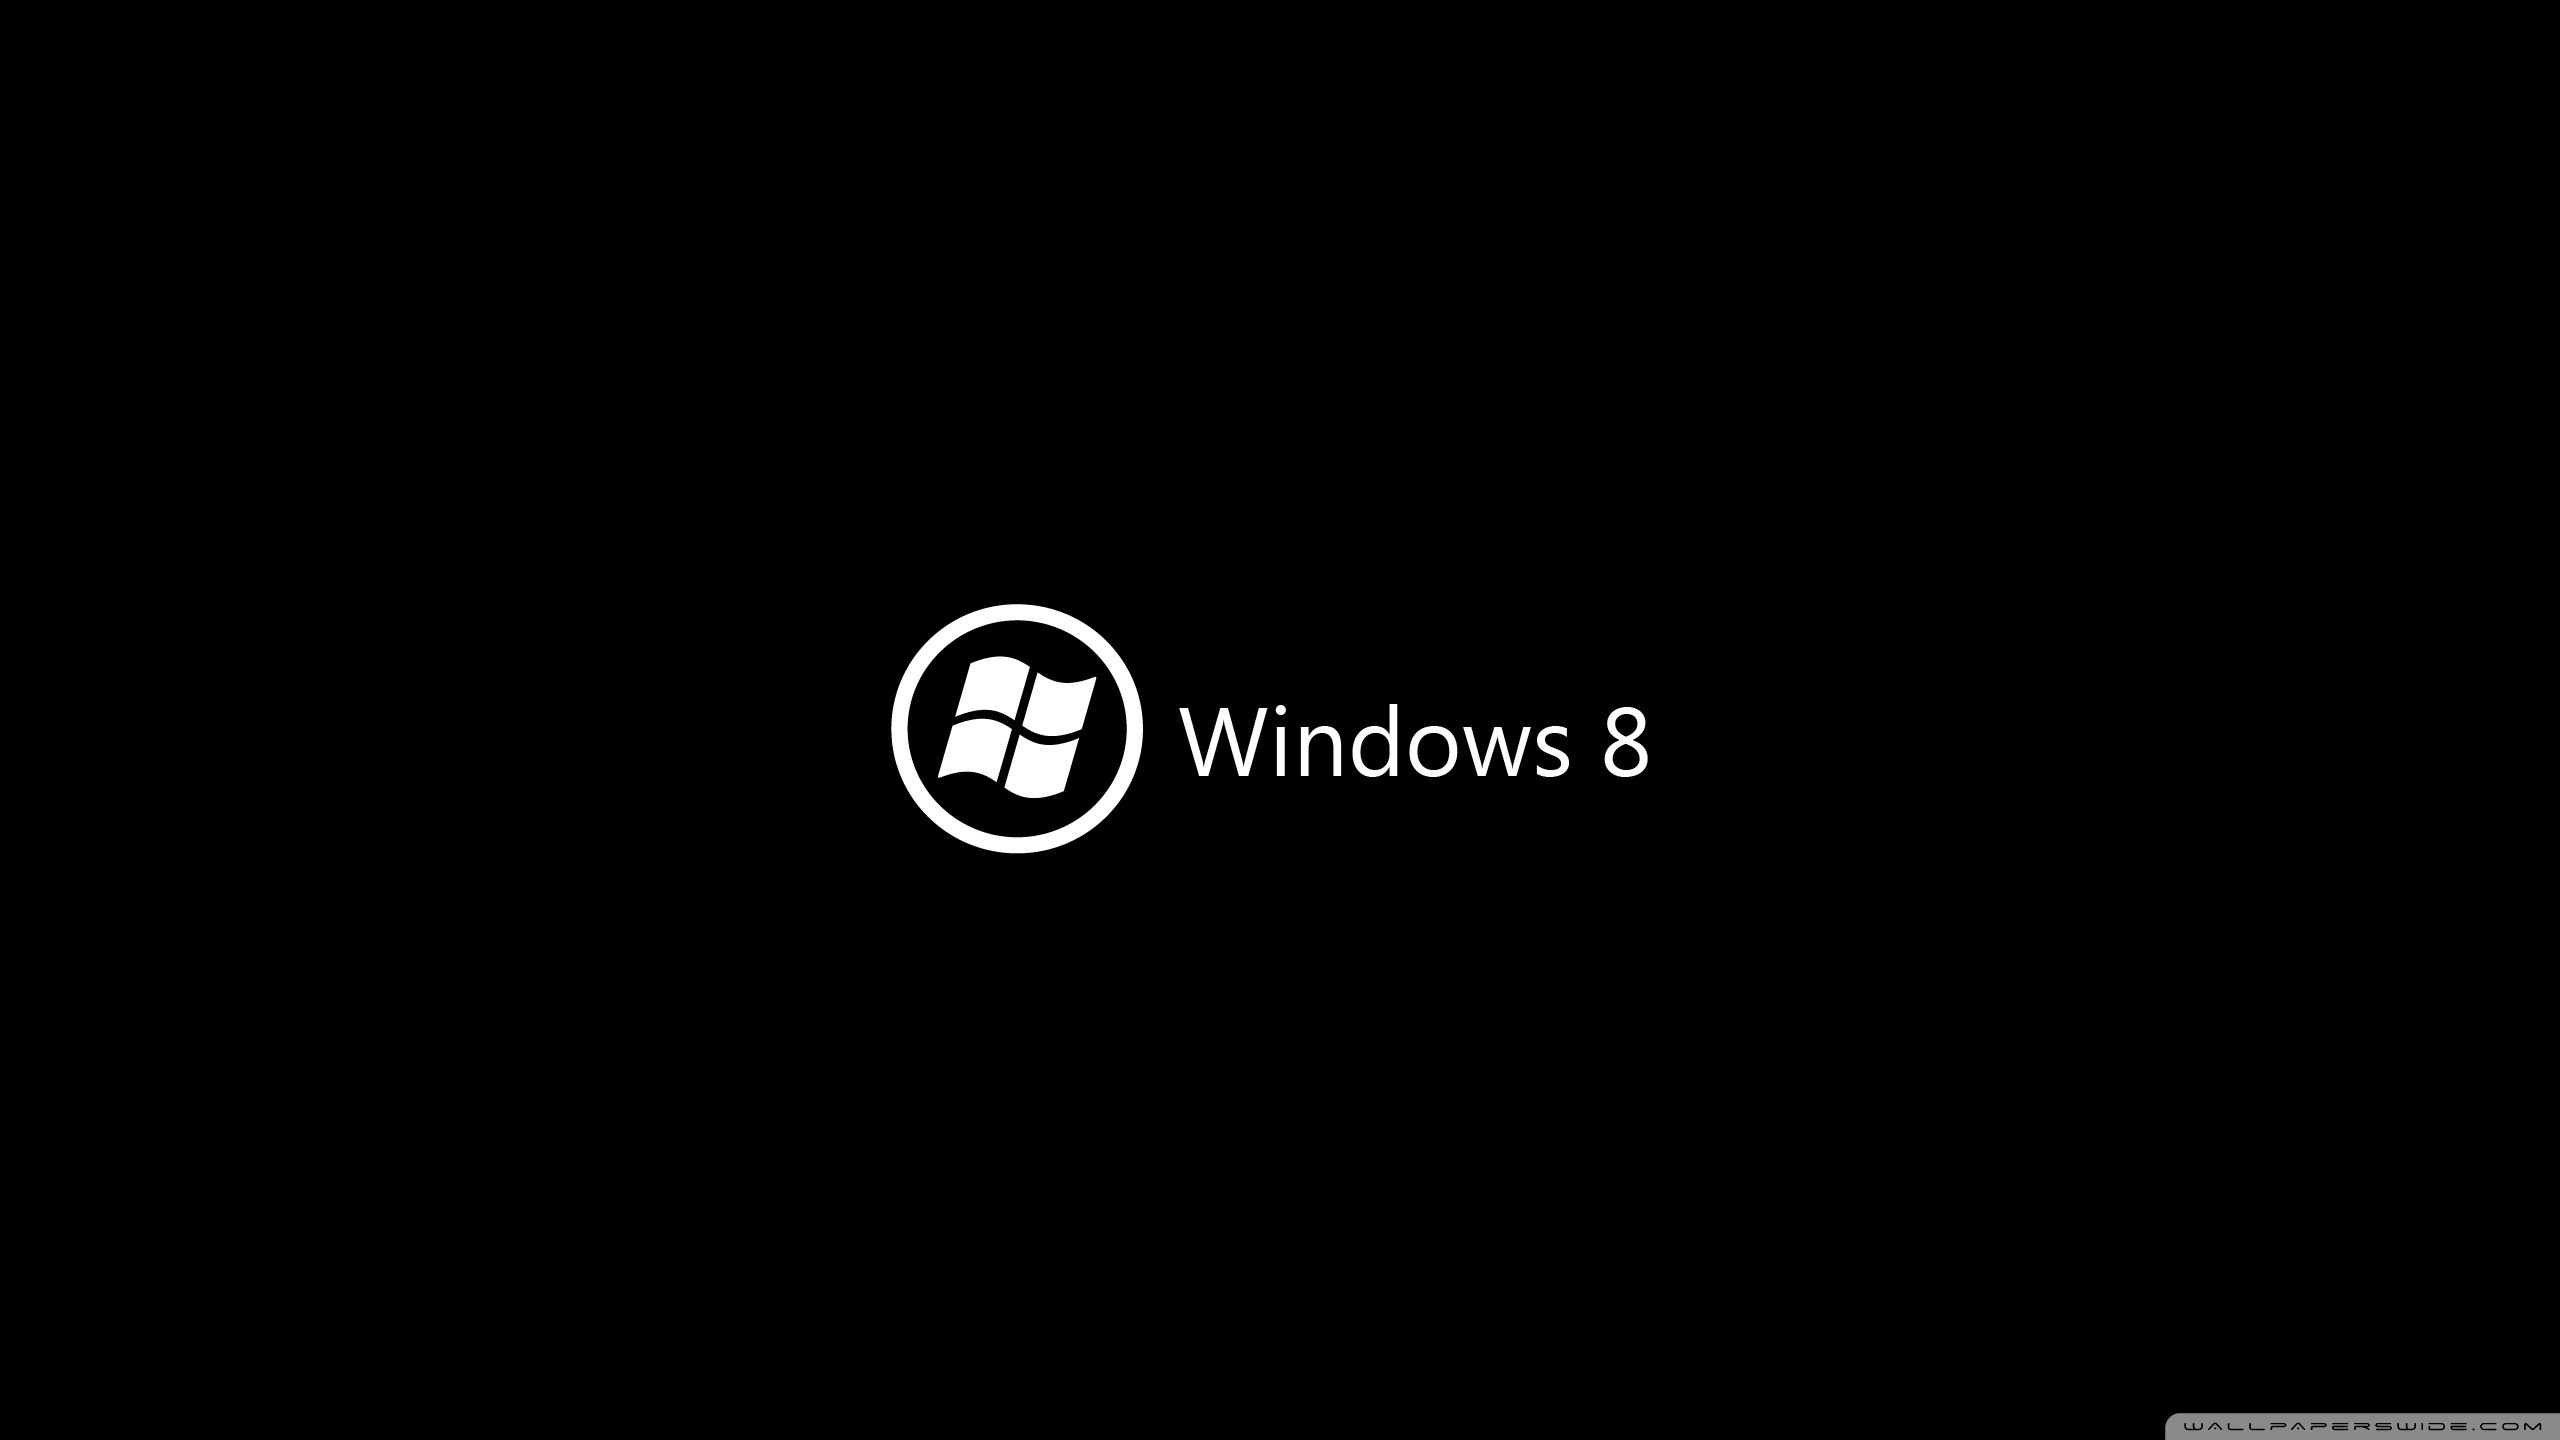 Windows 8 On Black Ultra Hd Desktop Background Wallpaper For